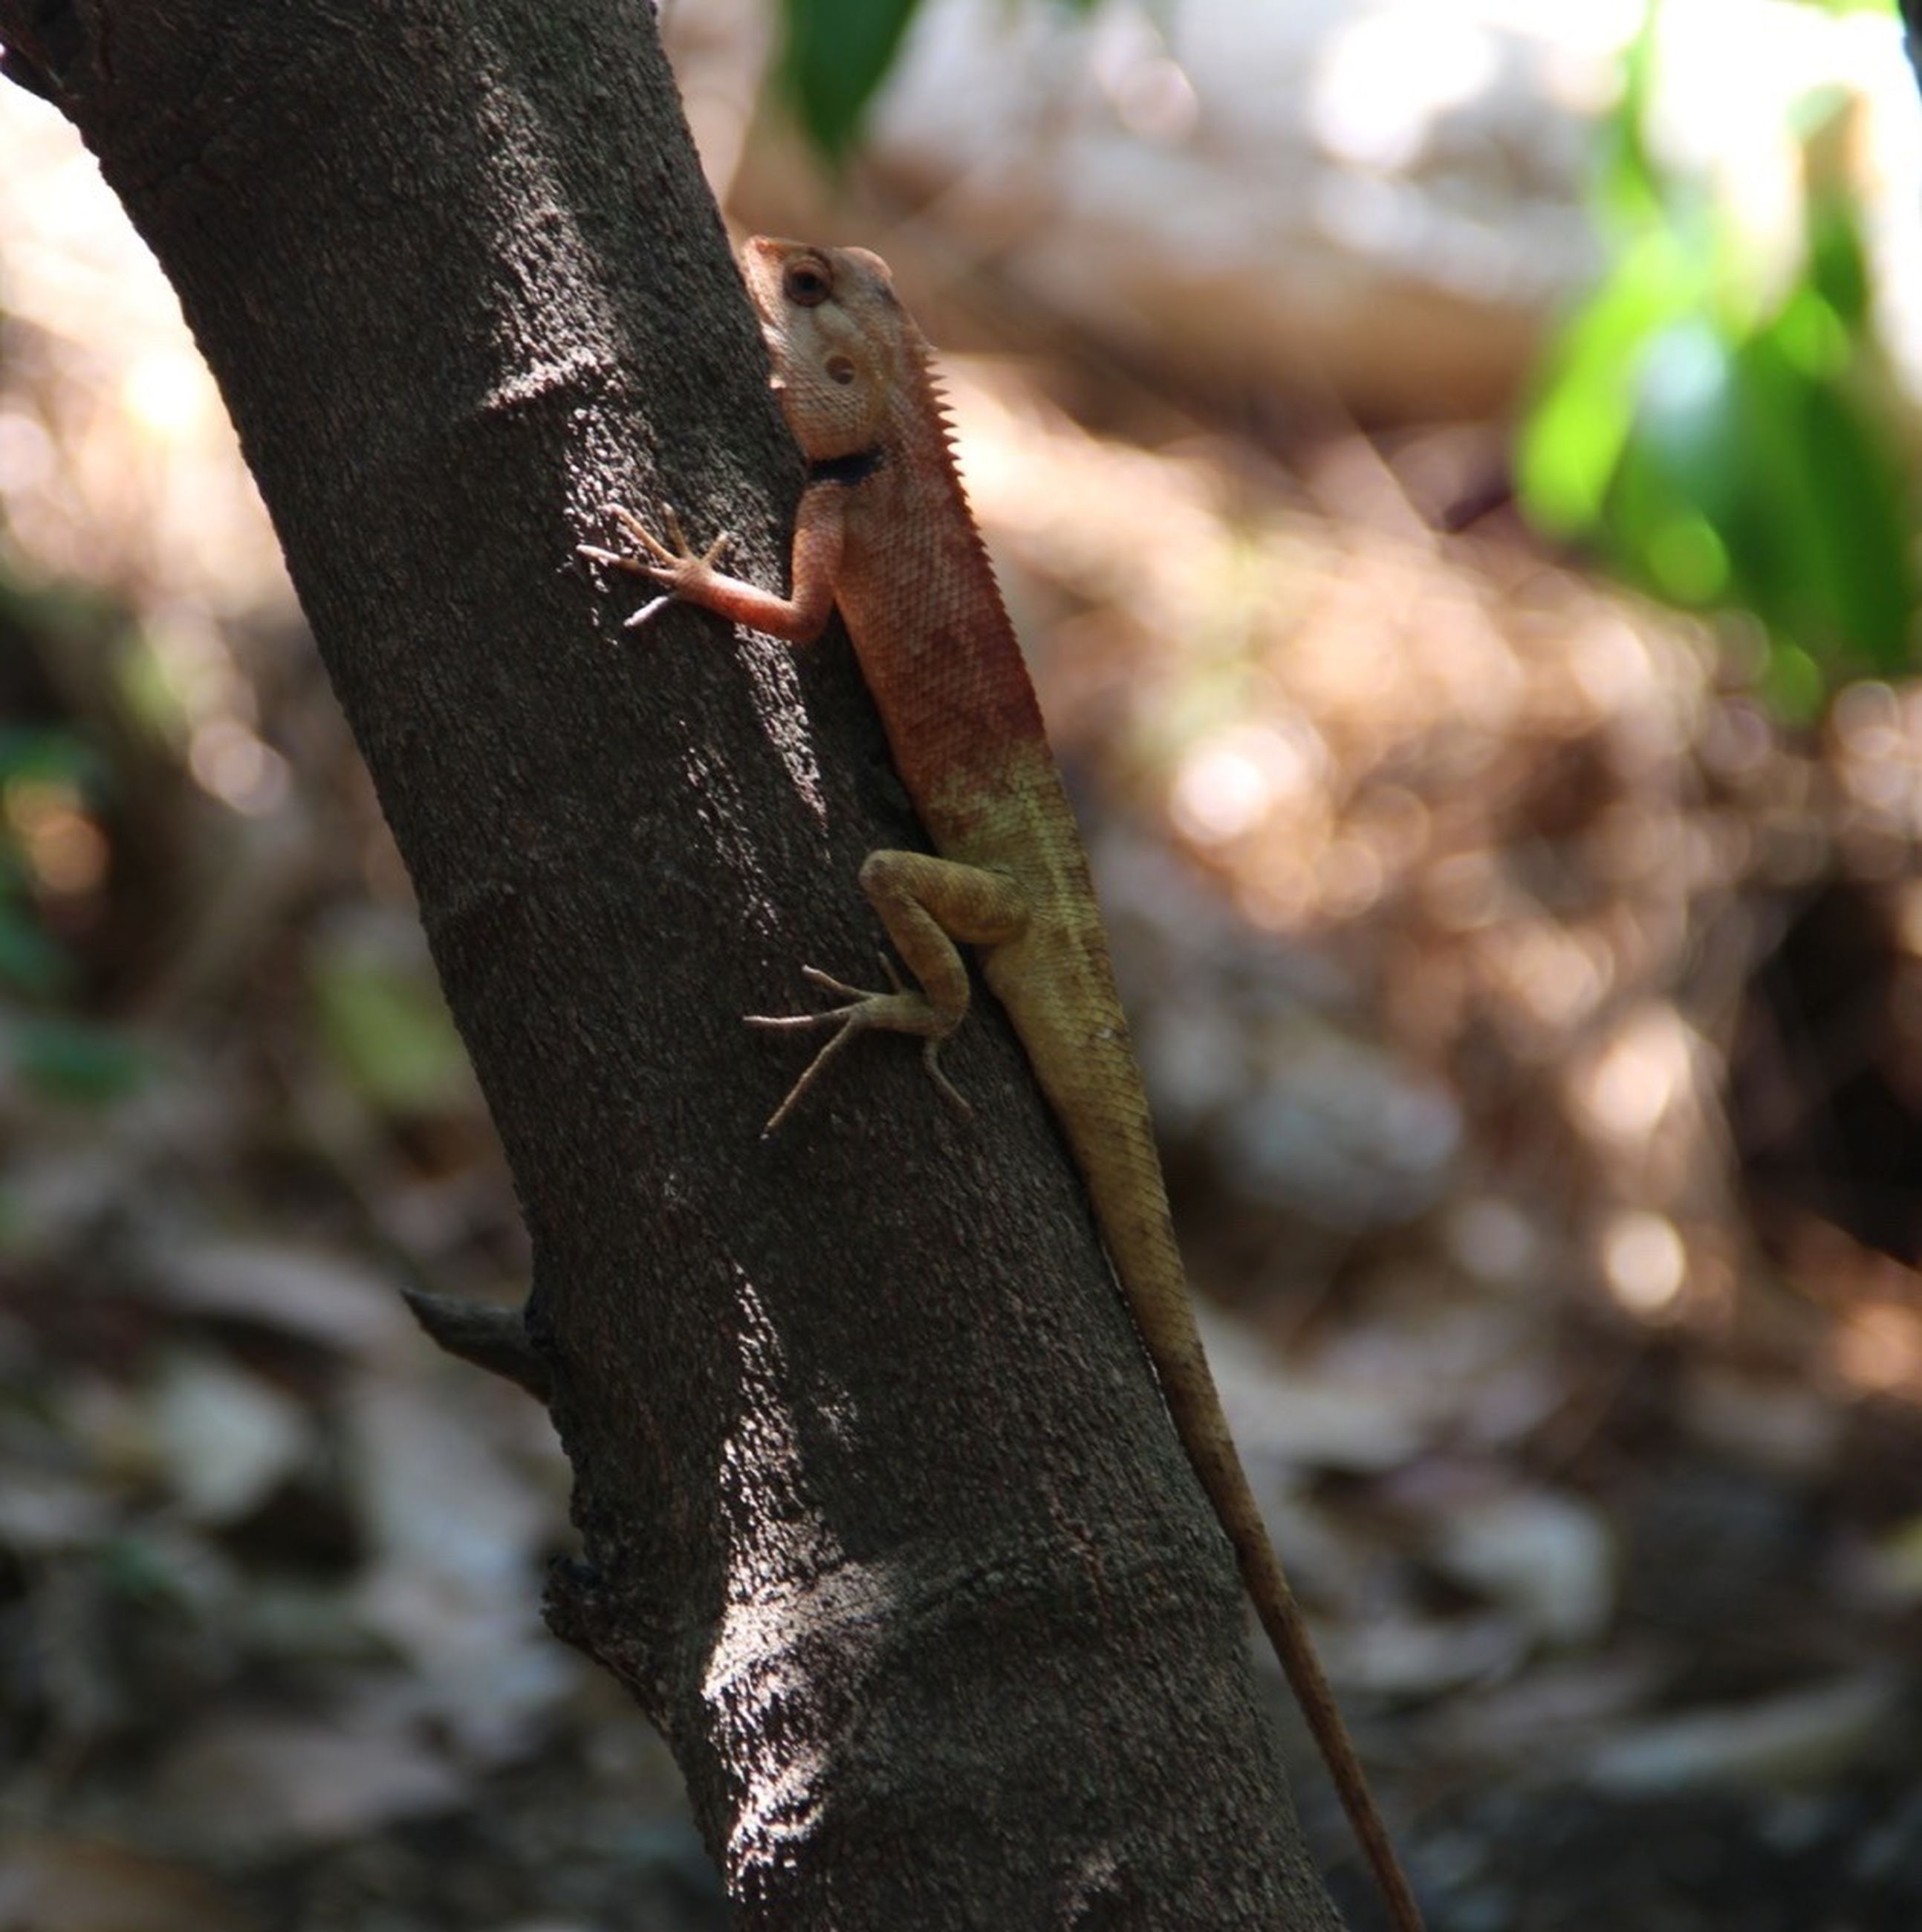 animals in the wild, one animal, animal themes, wildlife, lizard, focus on foreground, reptile, close-up, selective focus, tree trunk, insect, nature, outdoors, day, leaf, tree, no people, branch, rock - object, green color